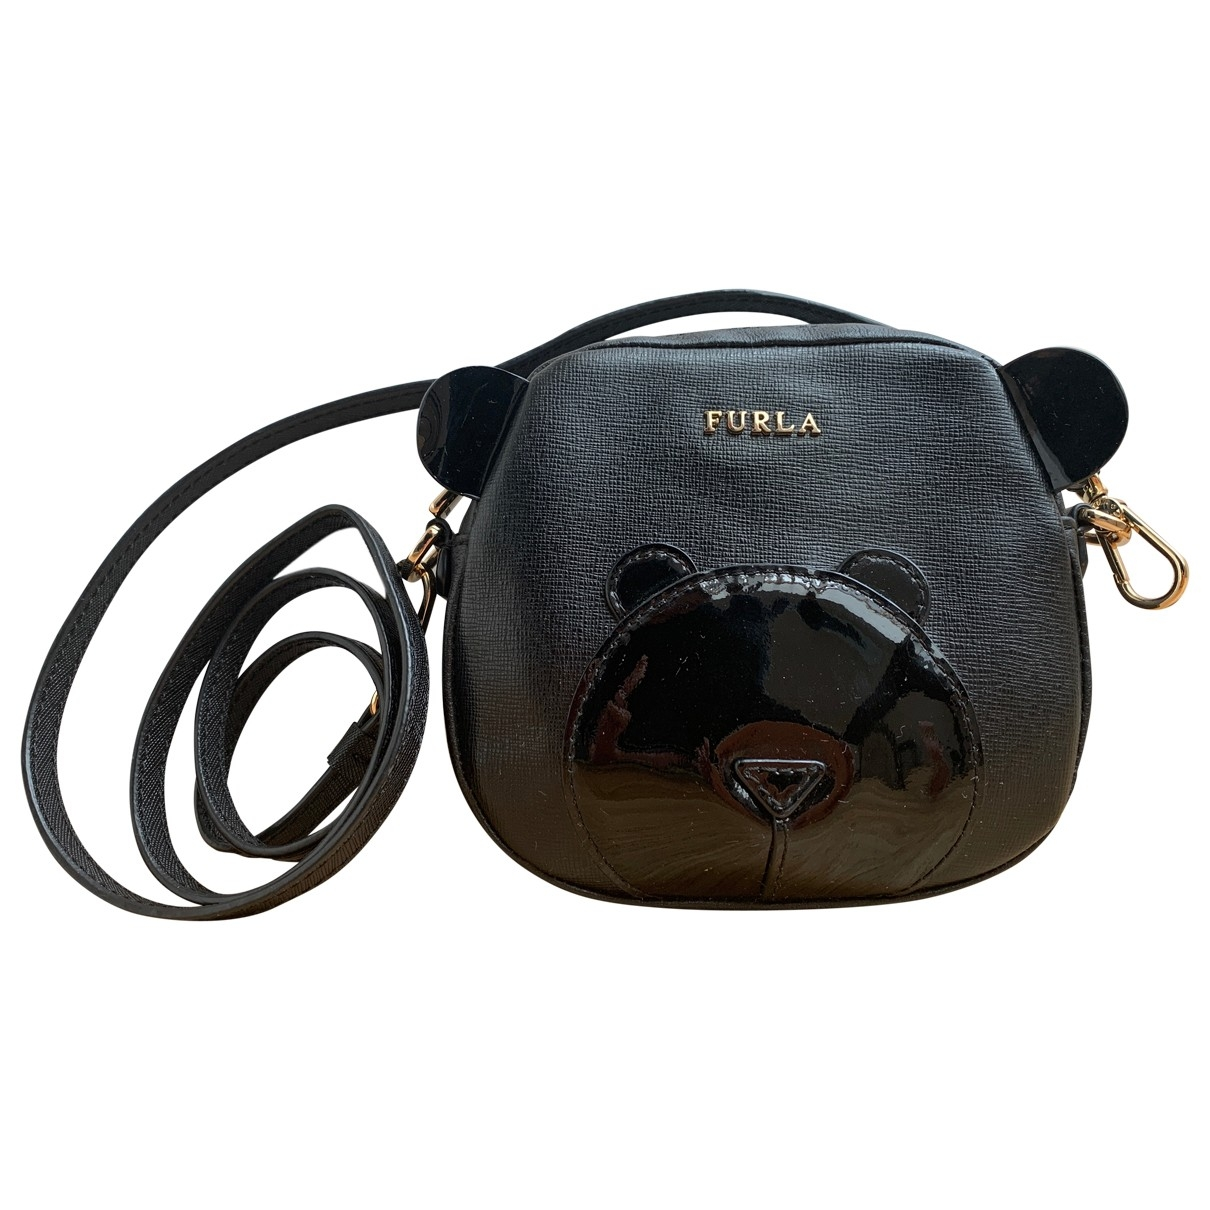 Furla \N Black Leather handbag for Women \N